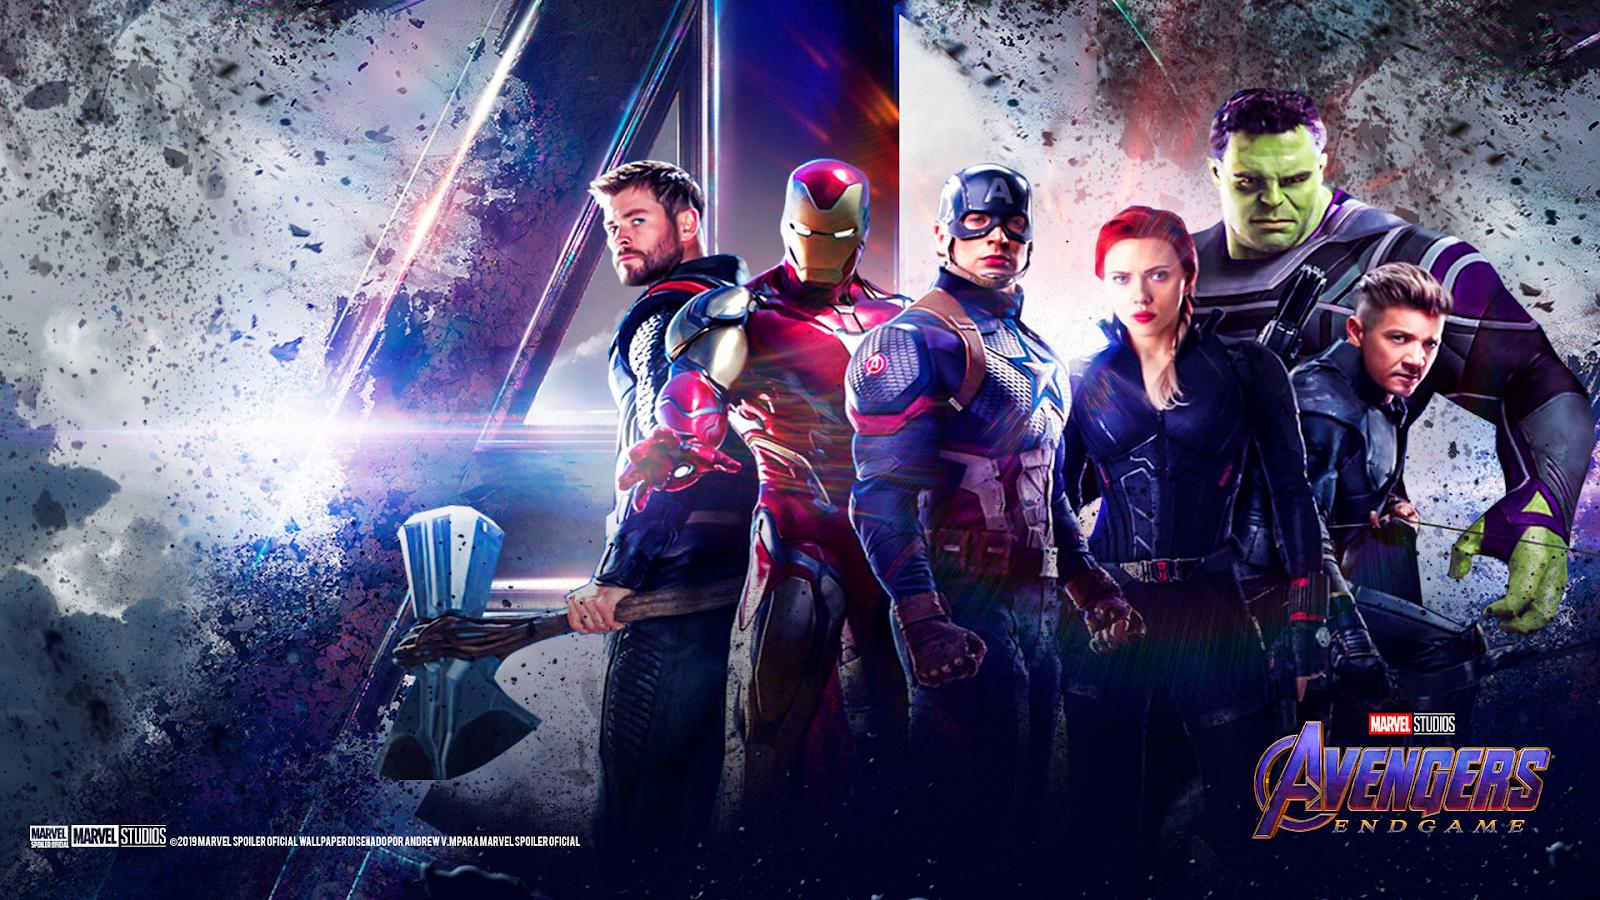 Best Avengers Endgame Avengers Wallpapers For Desktop And Mobile